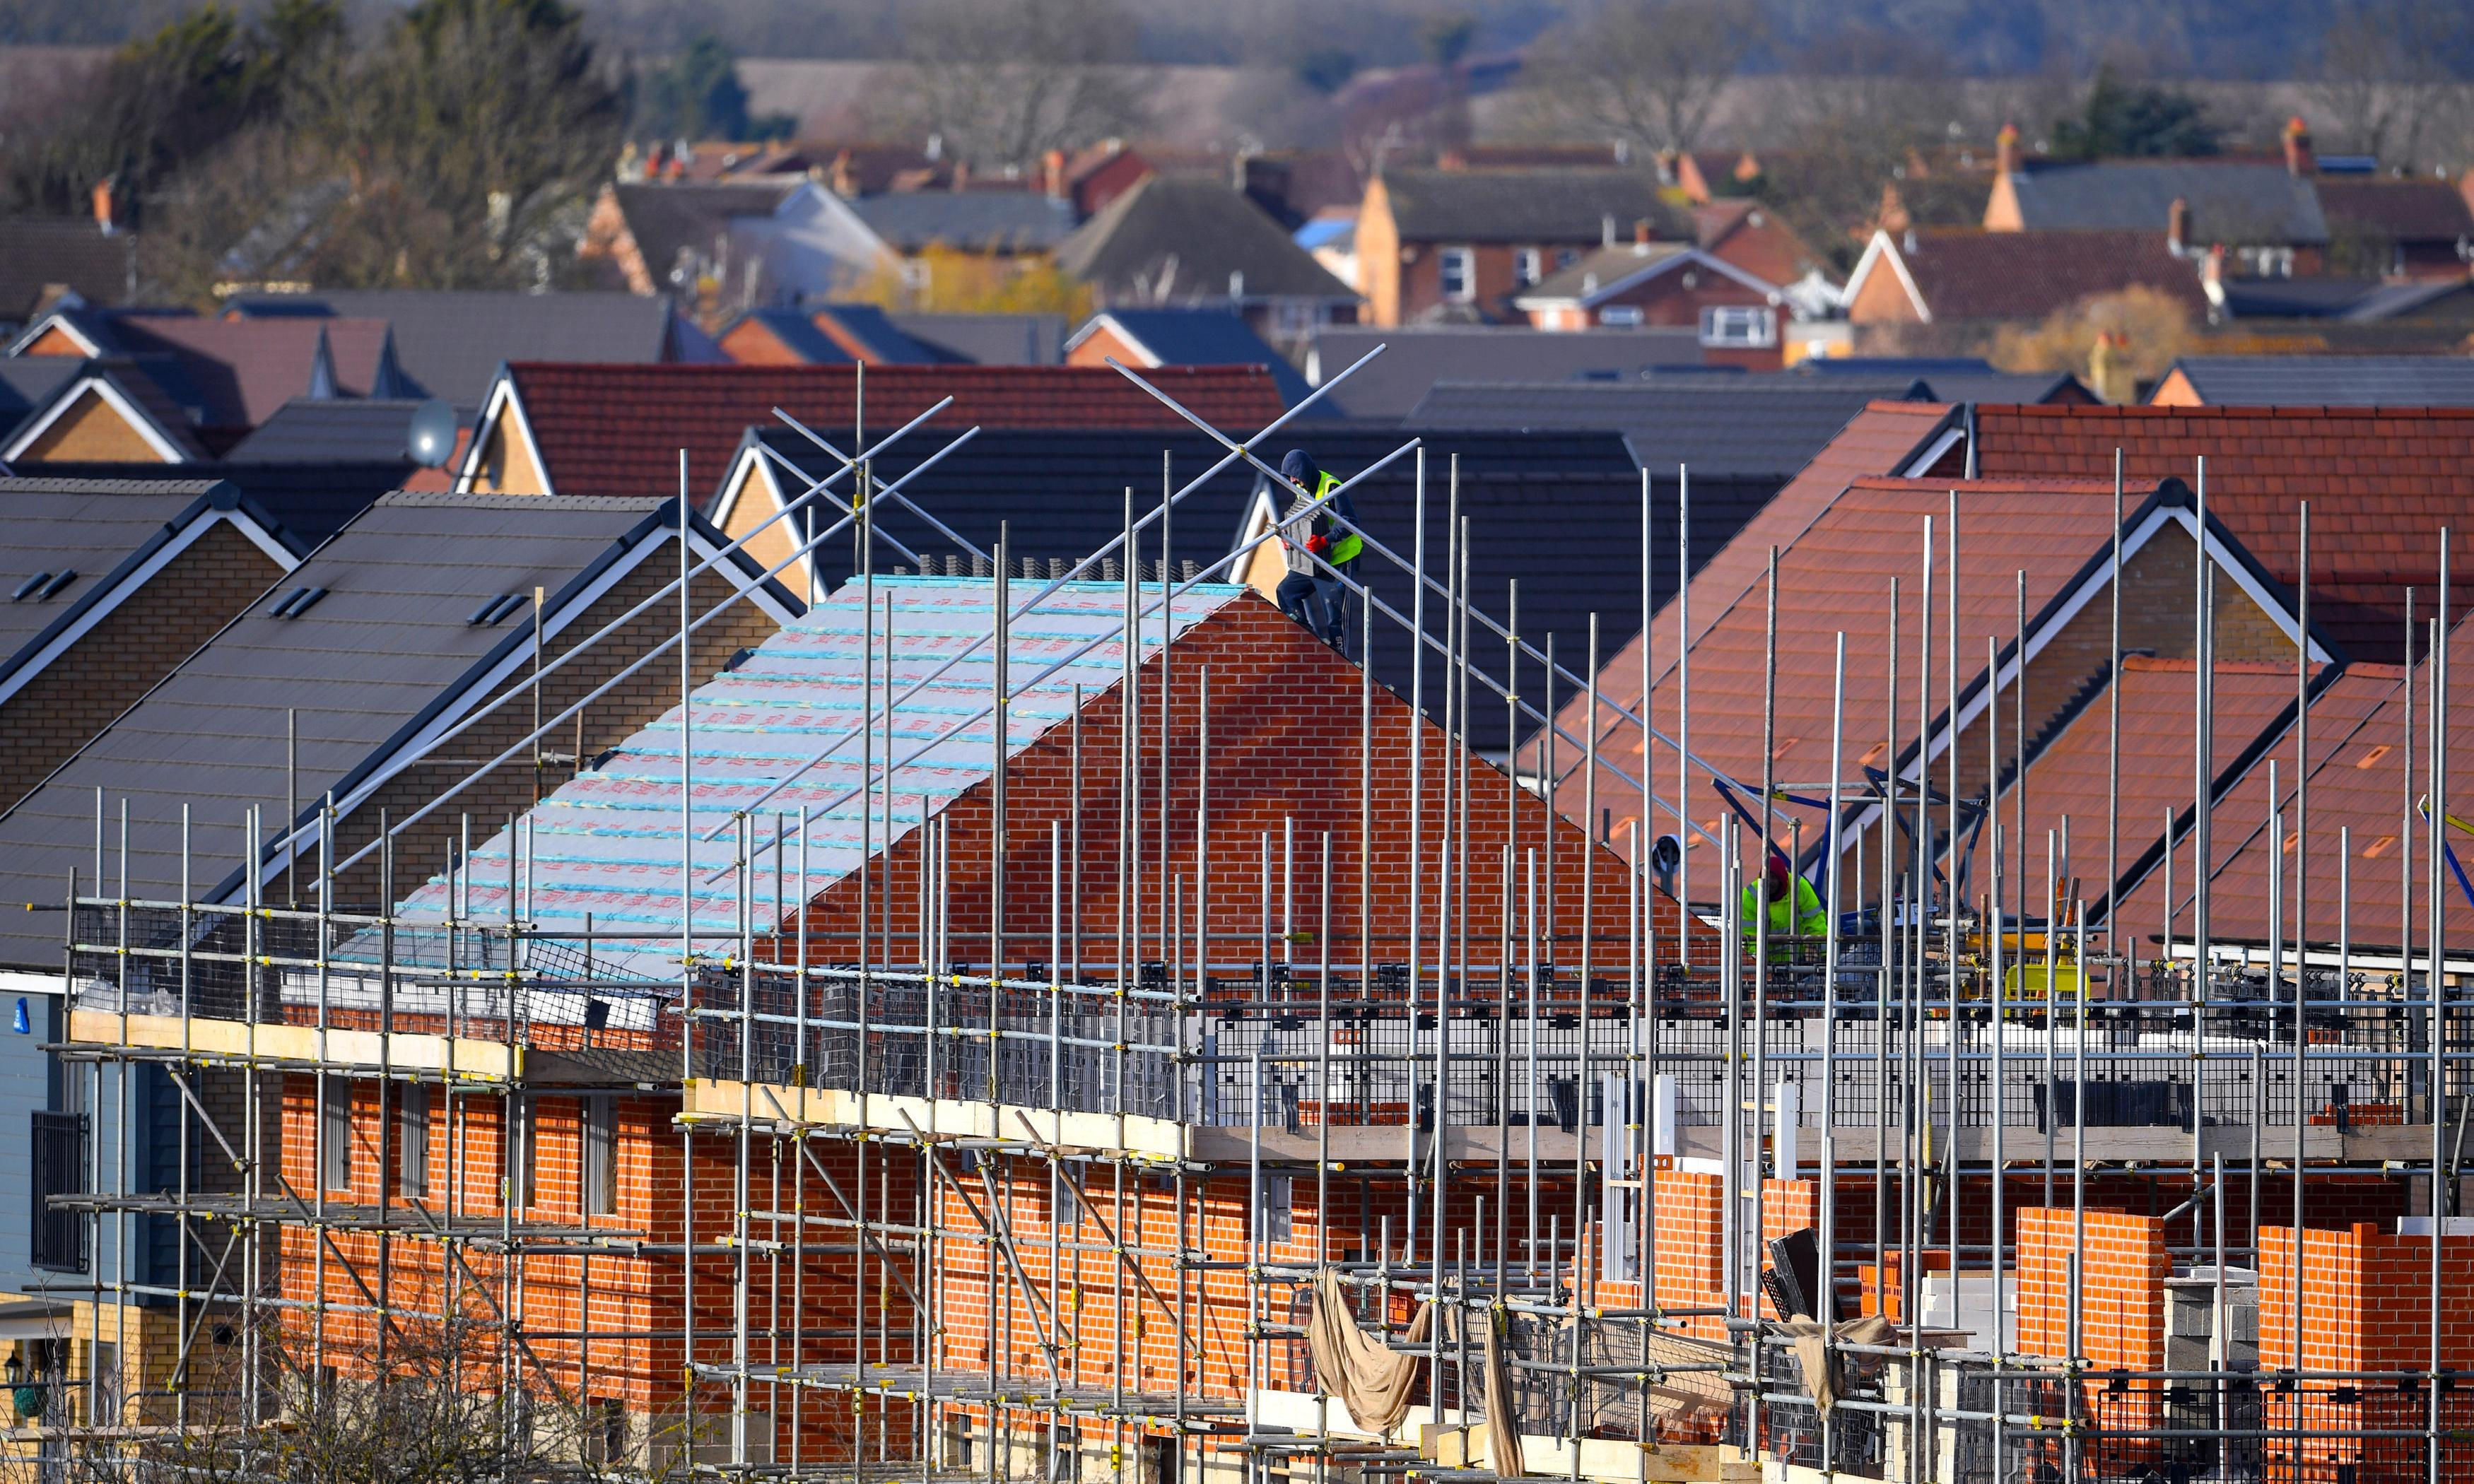 Labour to unveil £75bn social housing plan to 'build for the many'